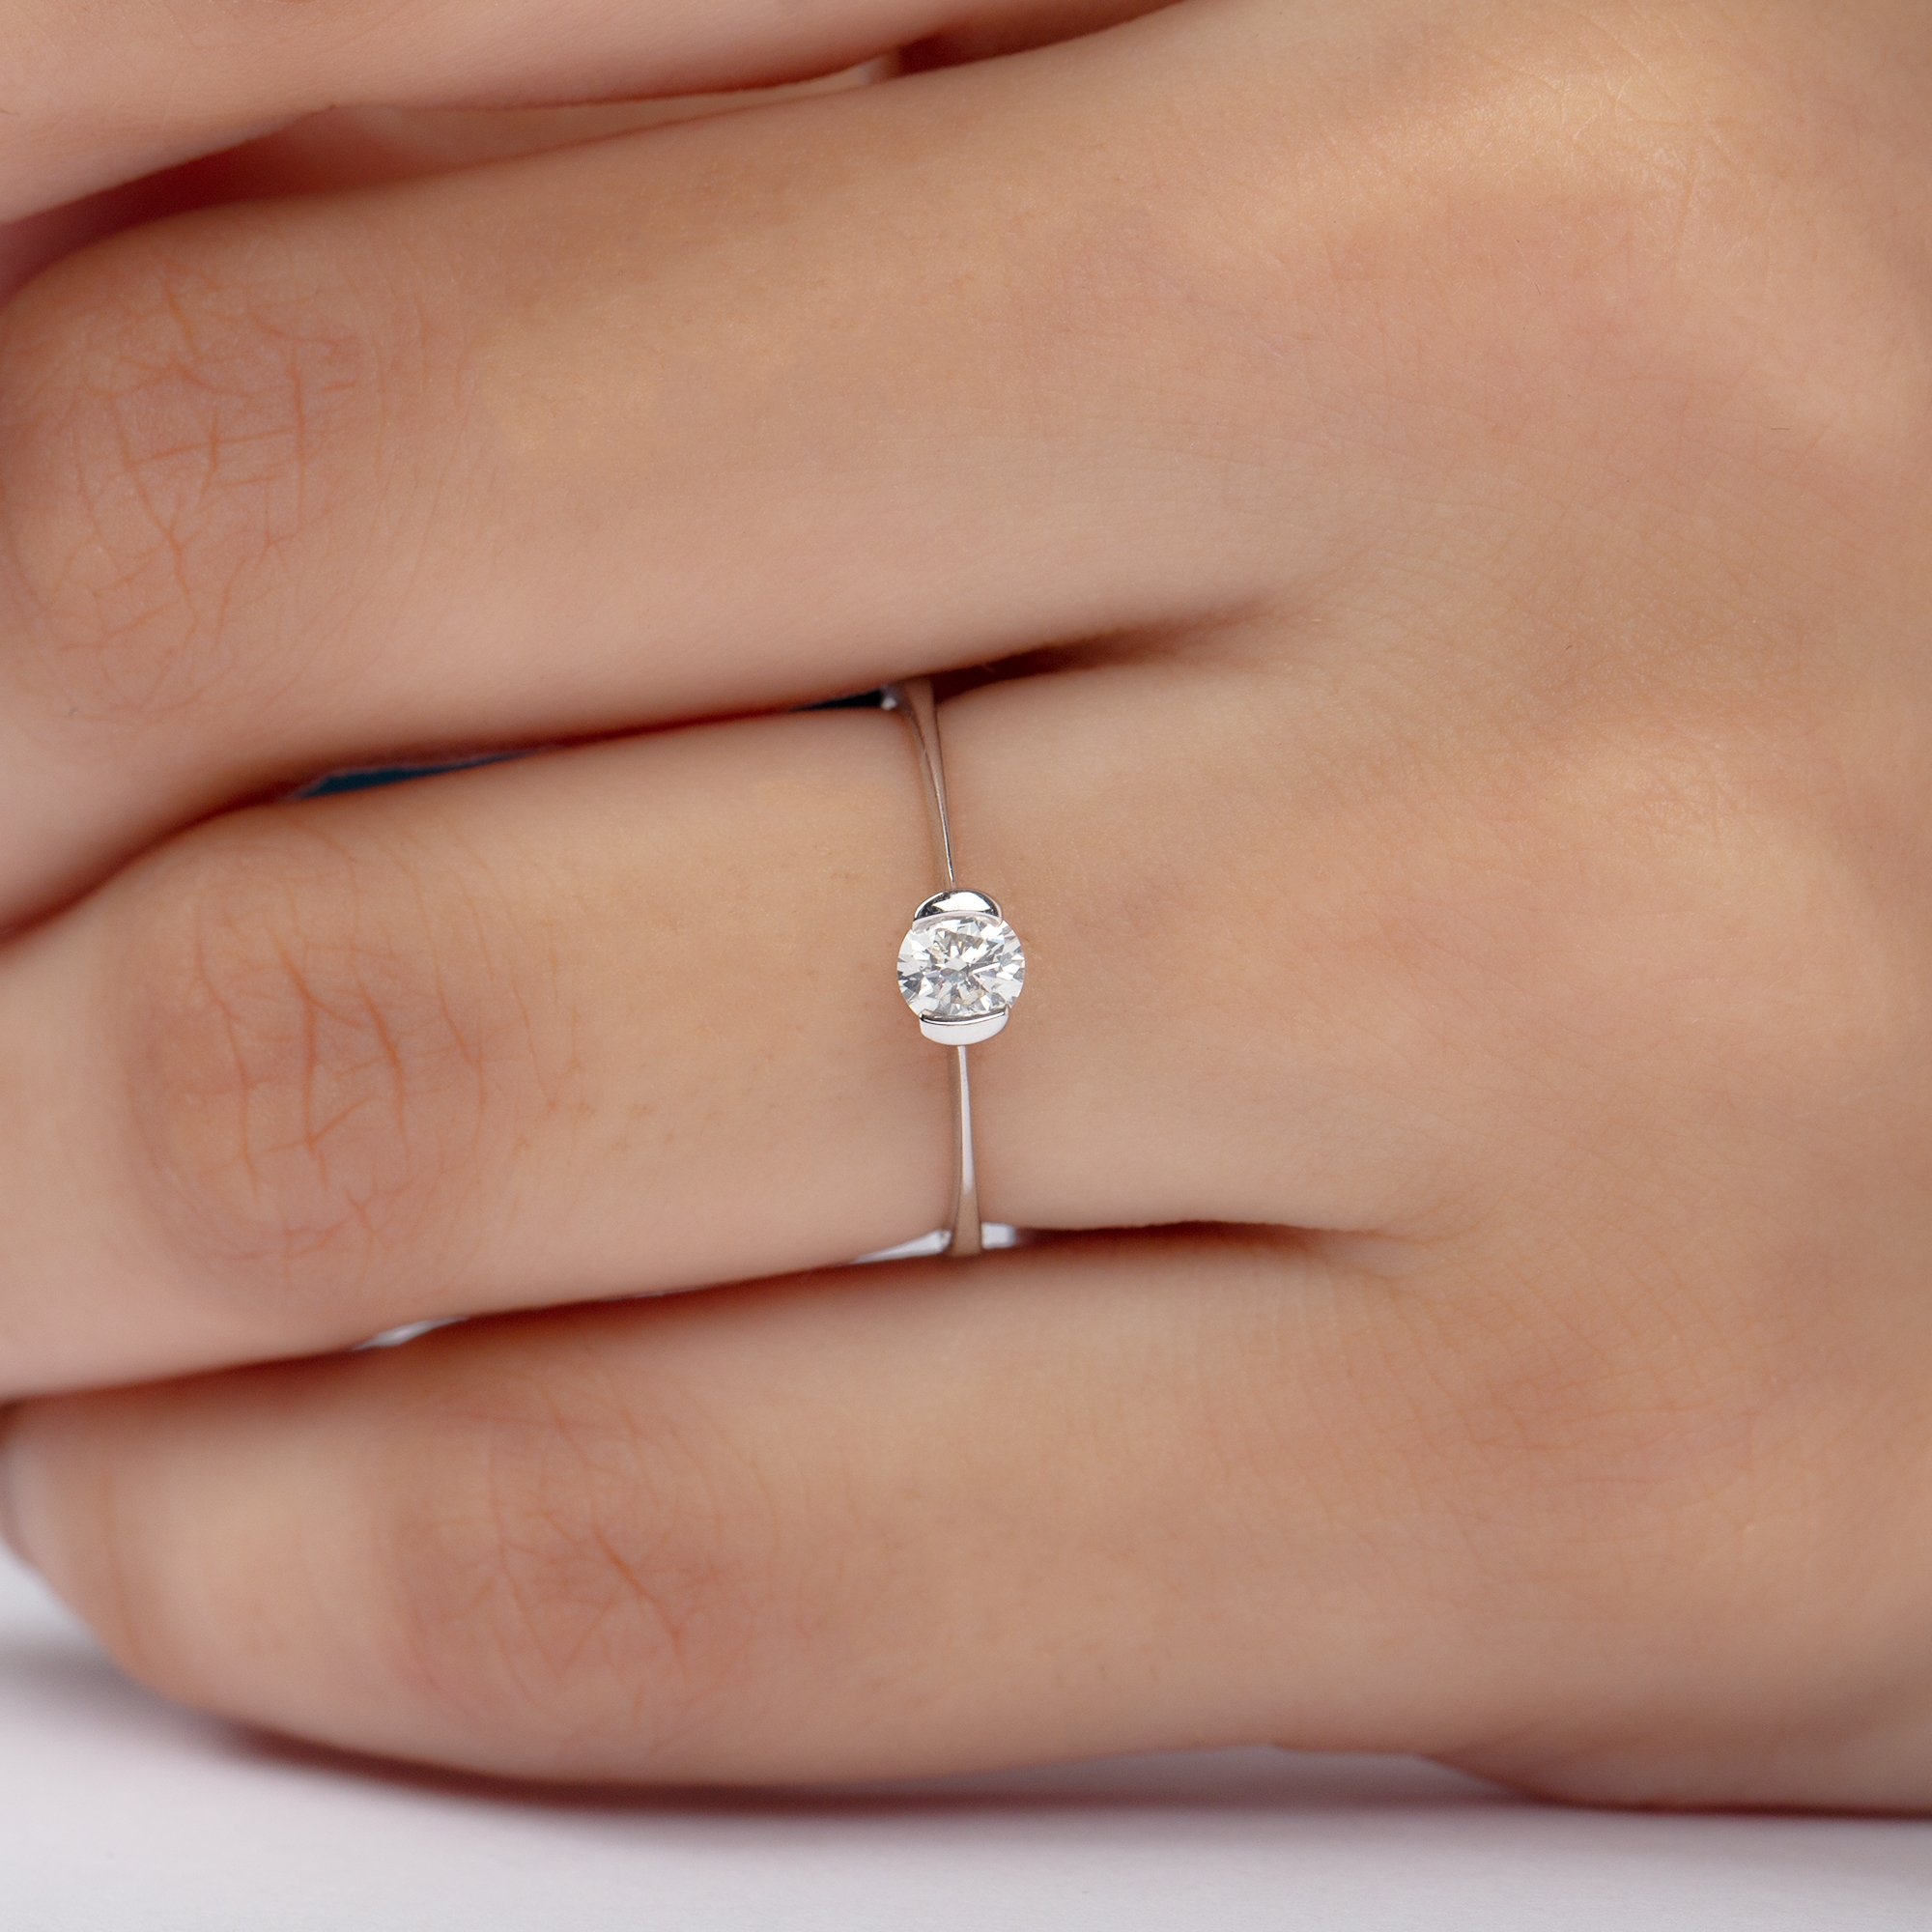 4X4 MM Round Shape Diamond Dainty Solitaire Ring in Half Bezel Setting